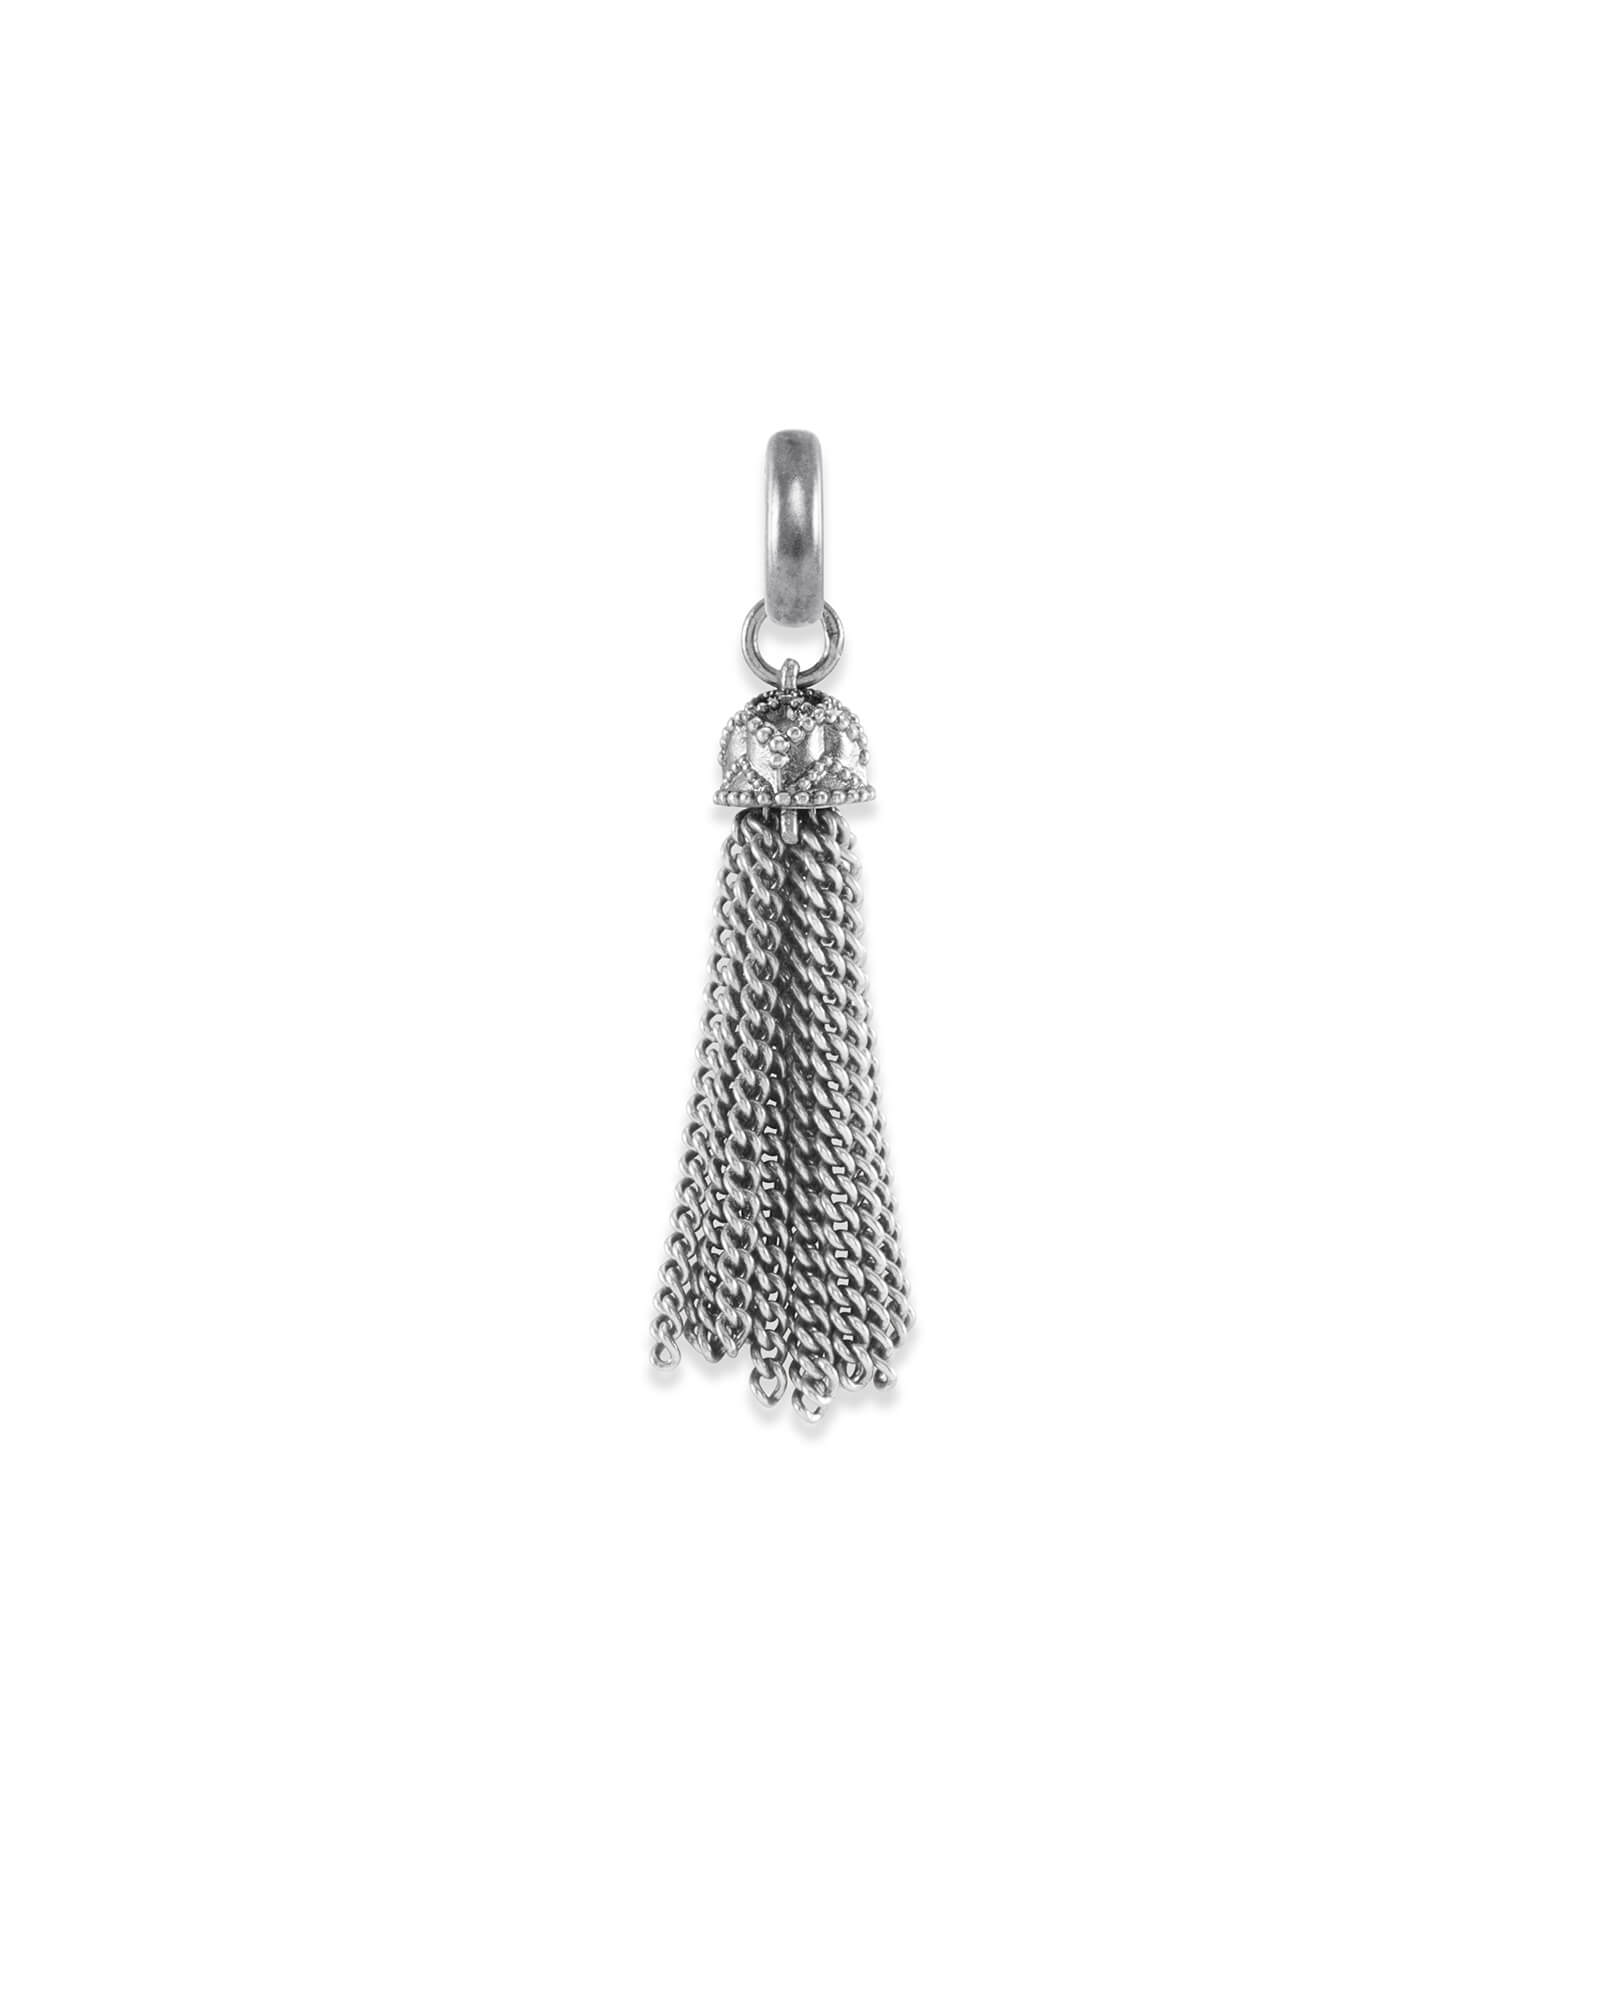 Small Tassel Charm in Vintage Silver